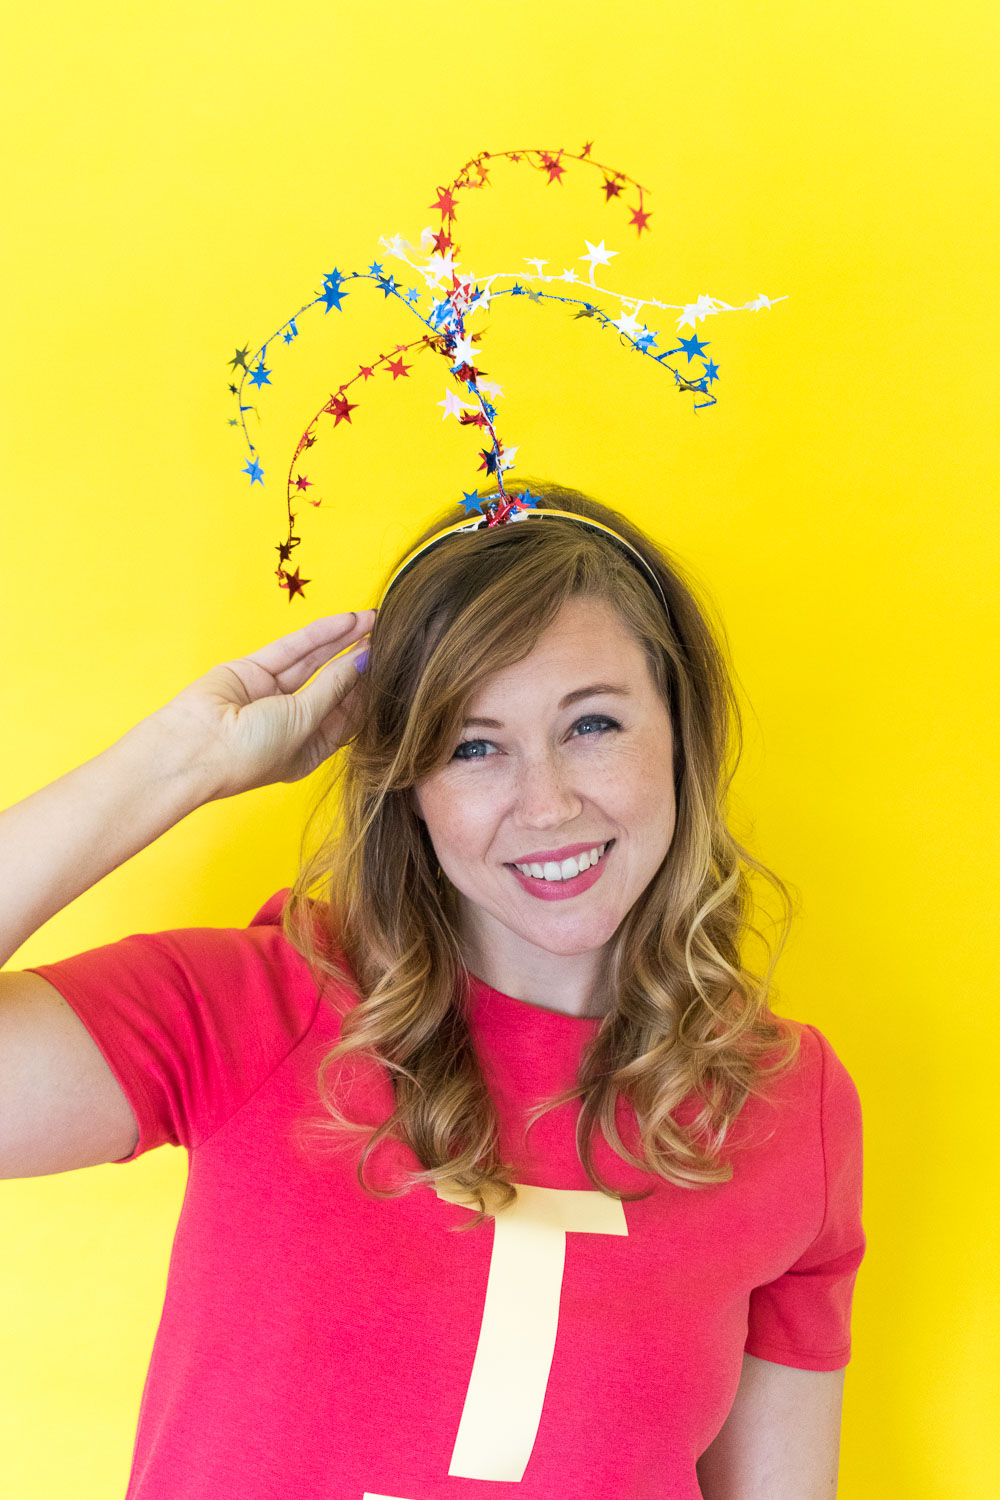 DIY Firecracker Costume for Halloween   Club Crafted